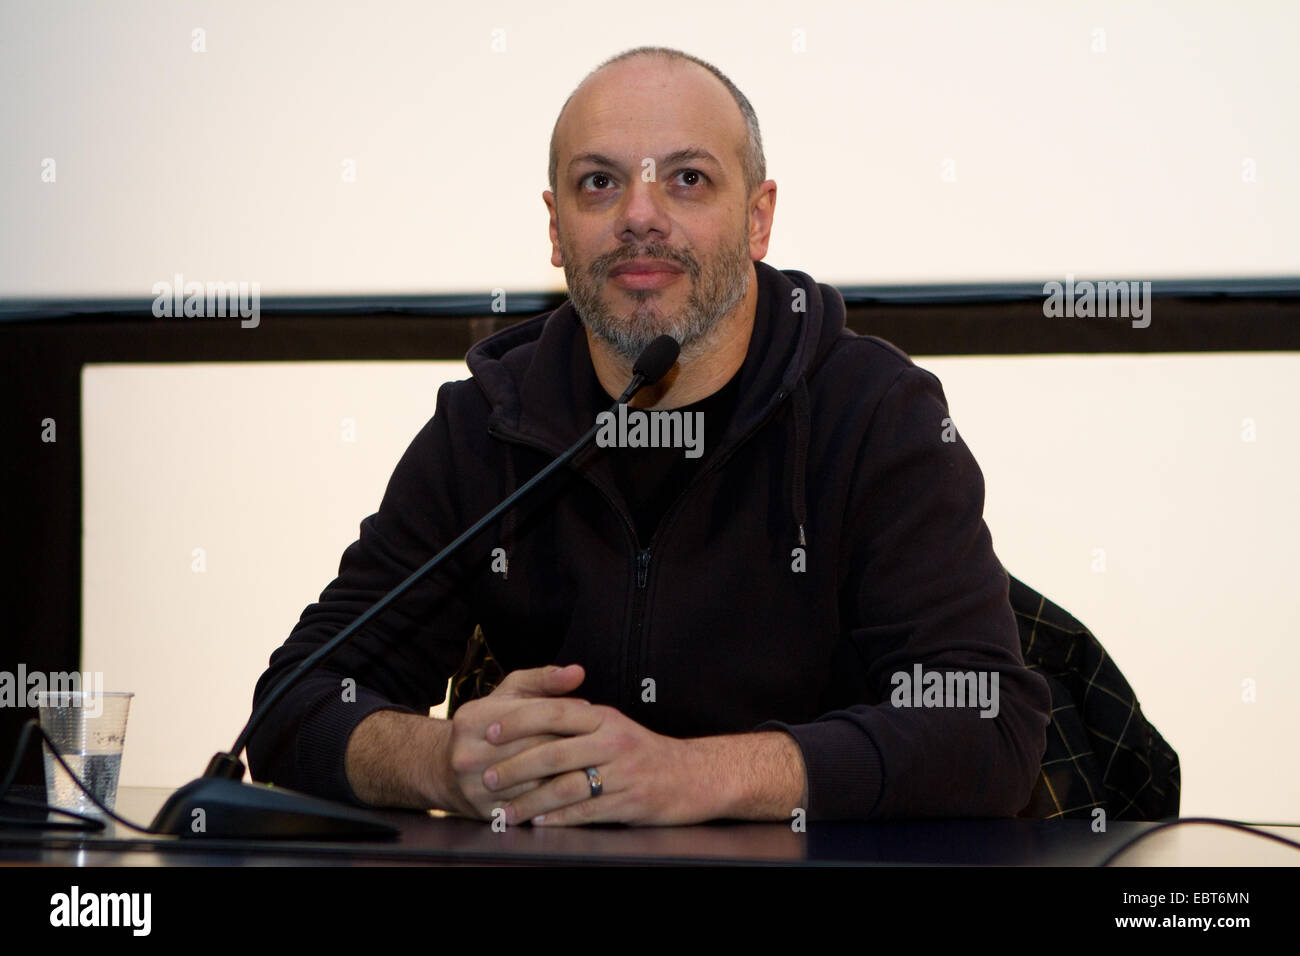 Italian journalist Diego Bianchi (known as Zoro) during a lecture at Torino Film Festival. - Stock Image